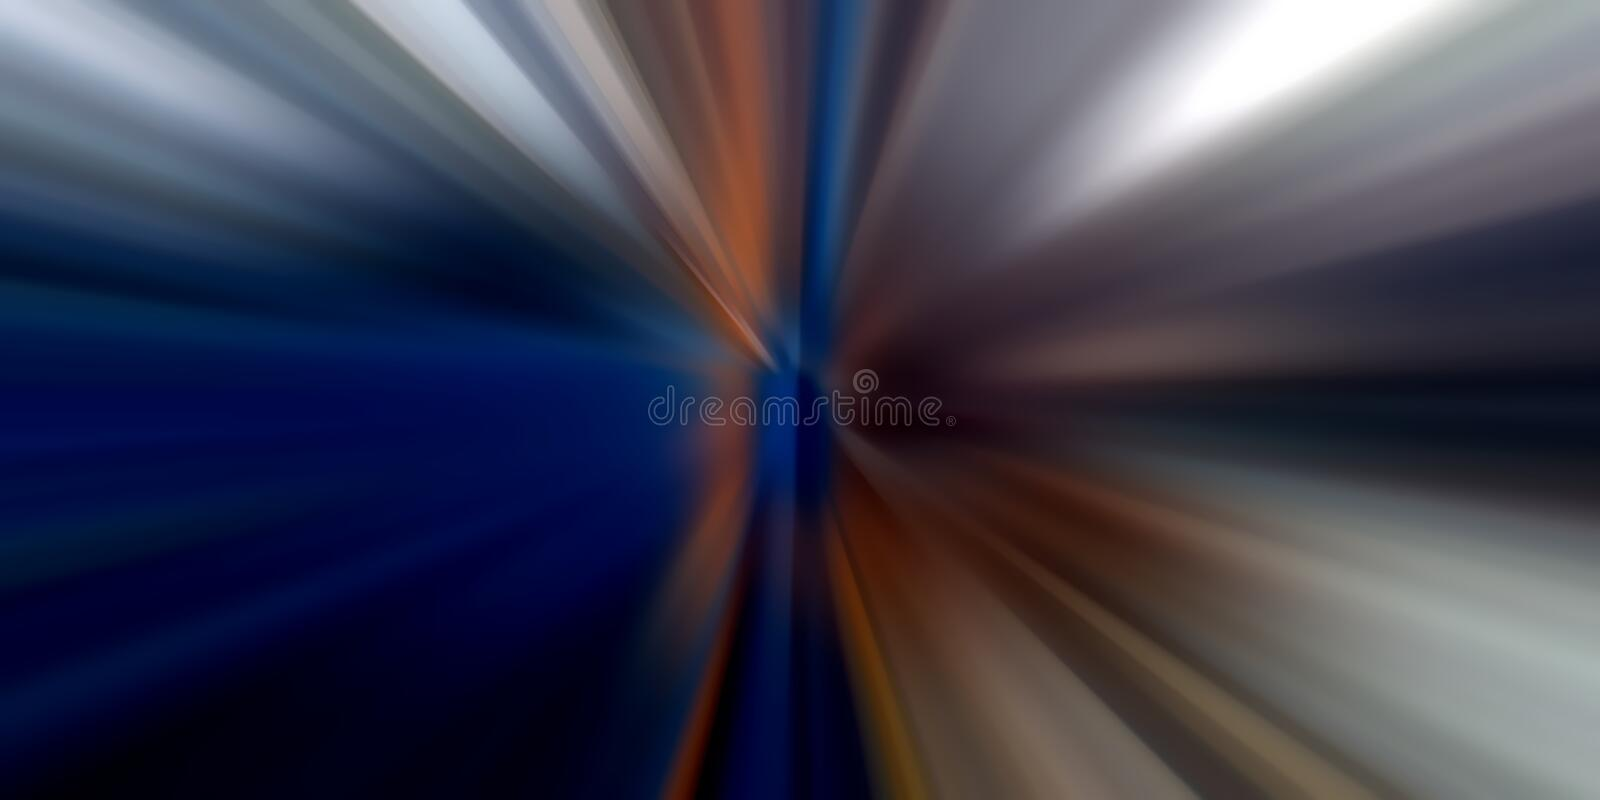 Colorful blur abstract background vector design, colorful blurred shaded background, vivid color vector illustration. stock image